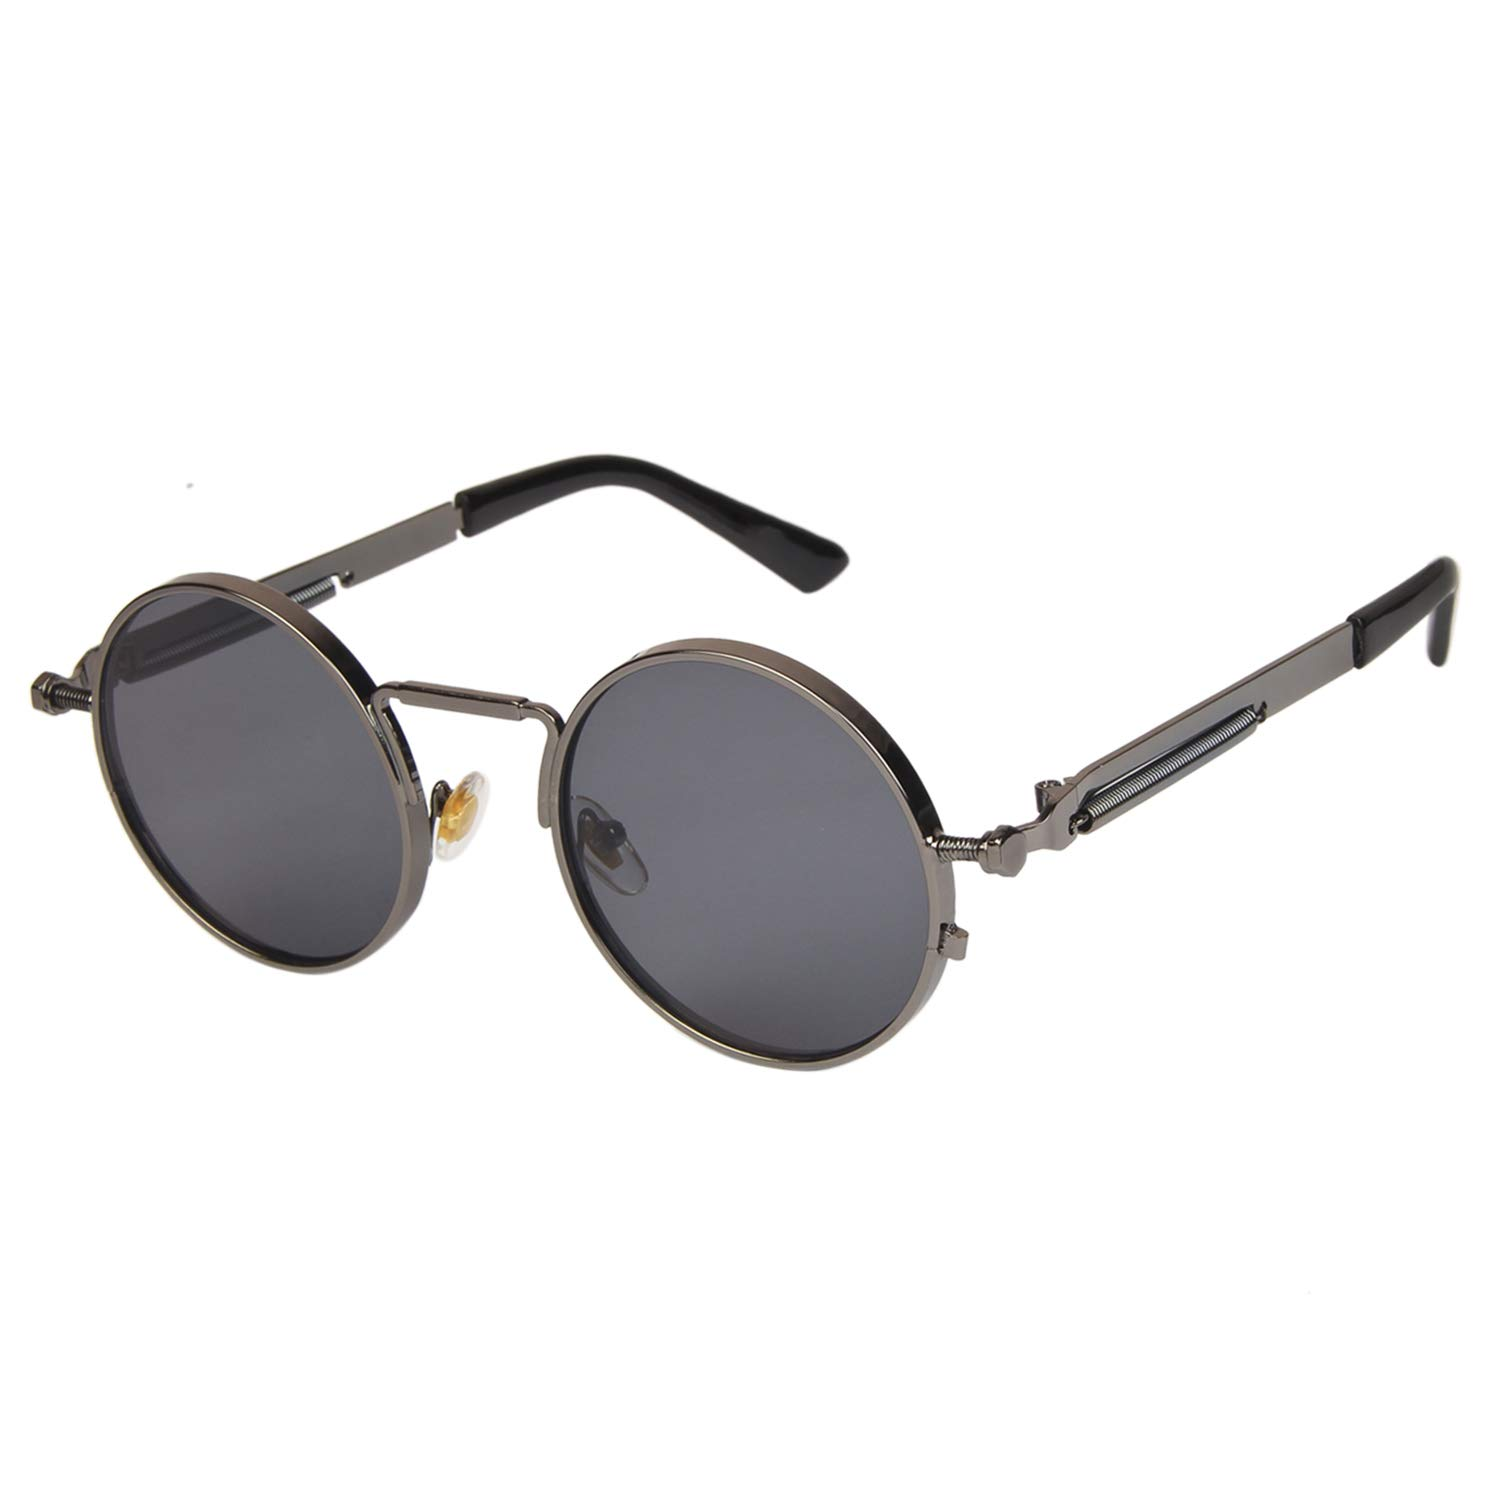 Arzonai Silver Steampunk Metal Sunglasses For Men And Women